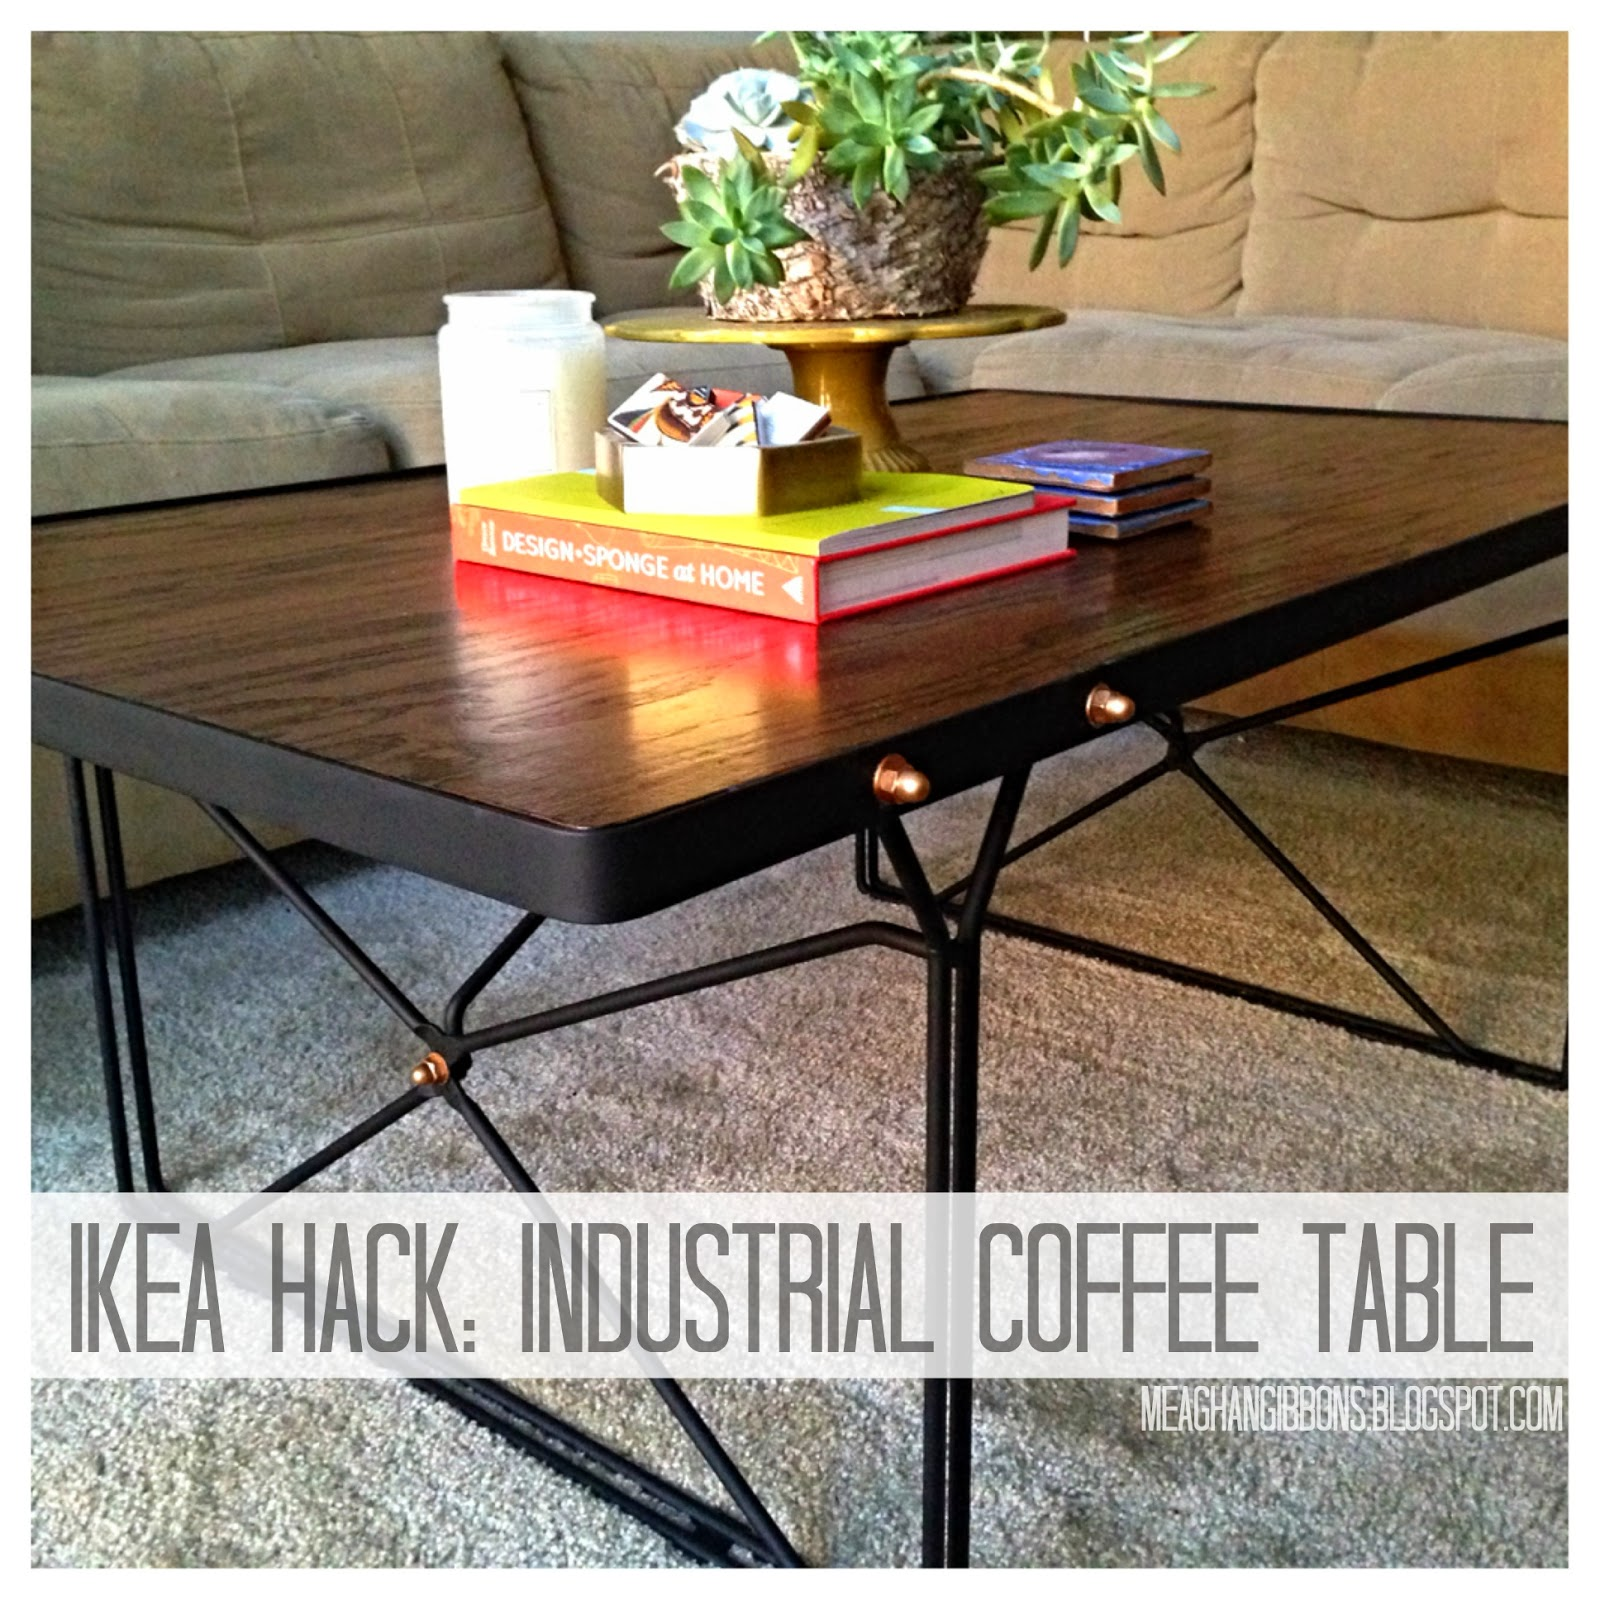 for a song: DIY [industrial coffee table reveal]